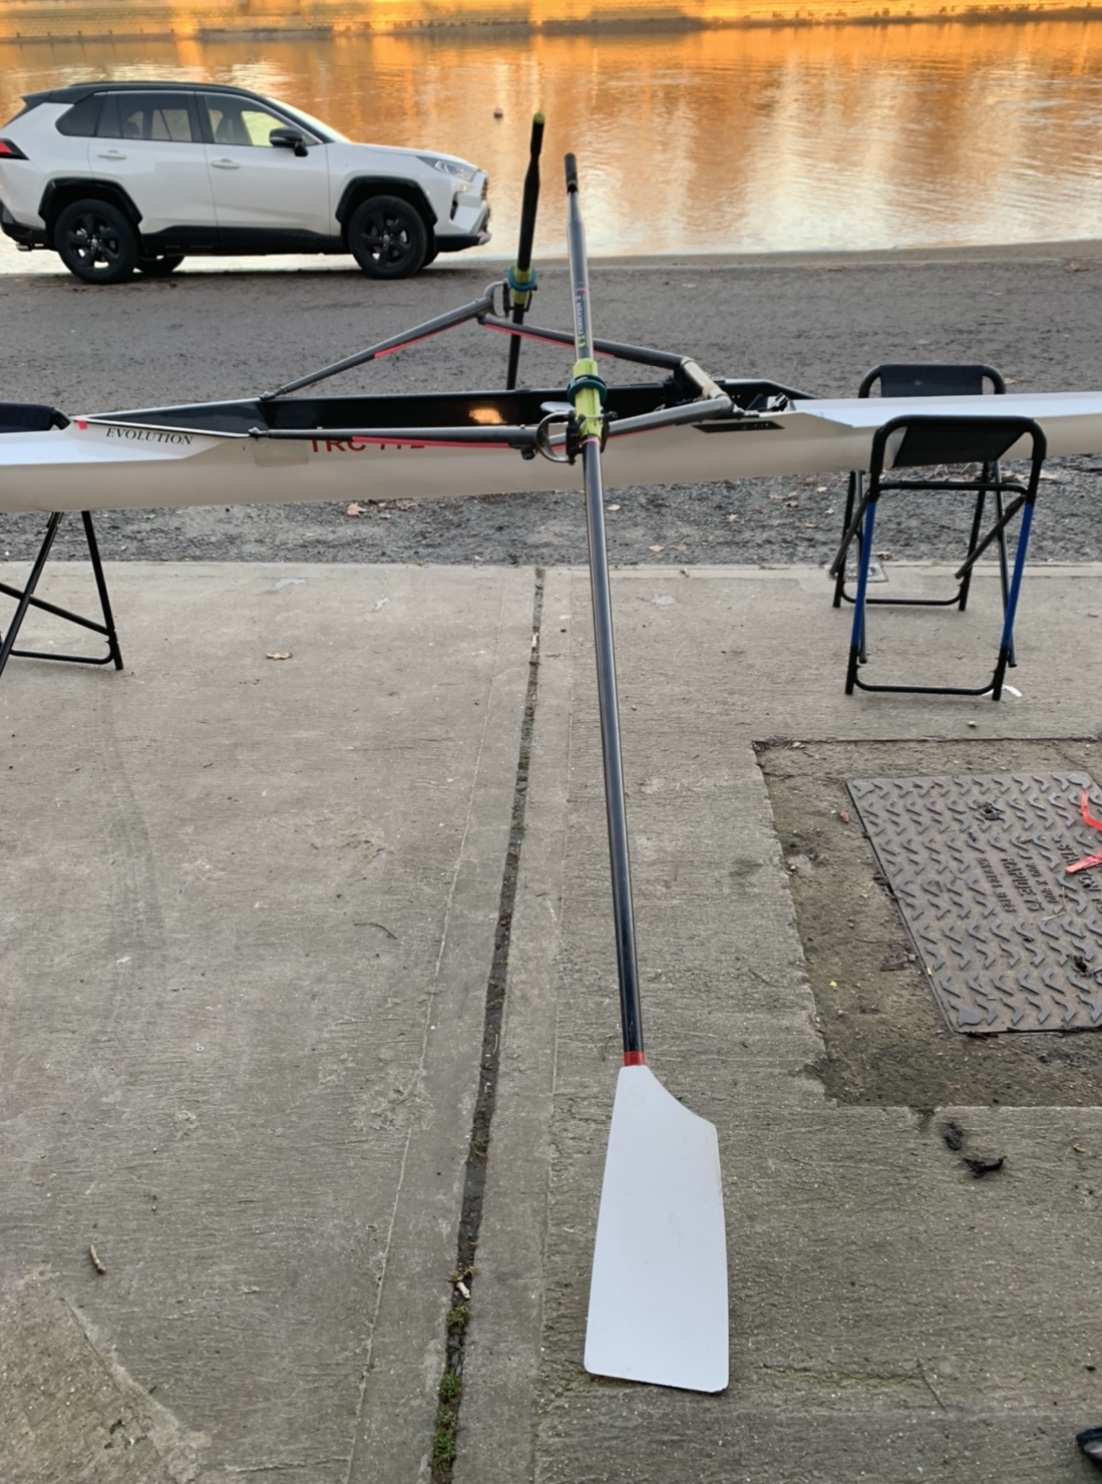 Sims 1x (65-75kg) with C2 Oars and Stroke Coach (red)